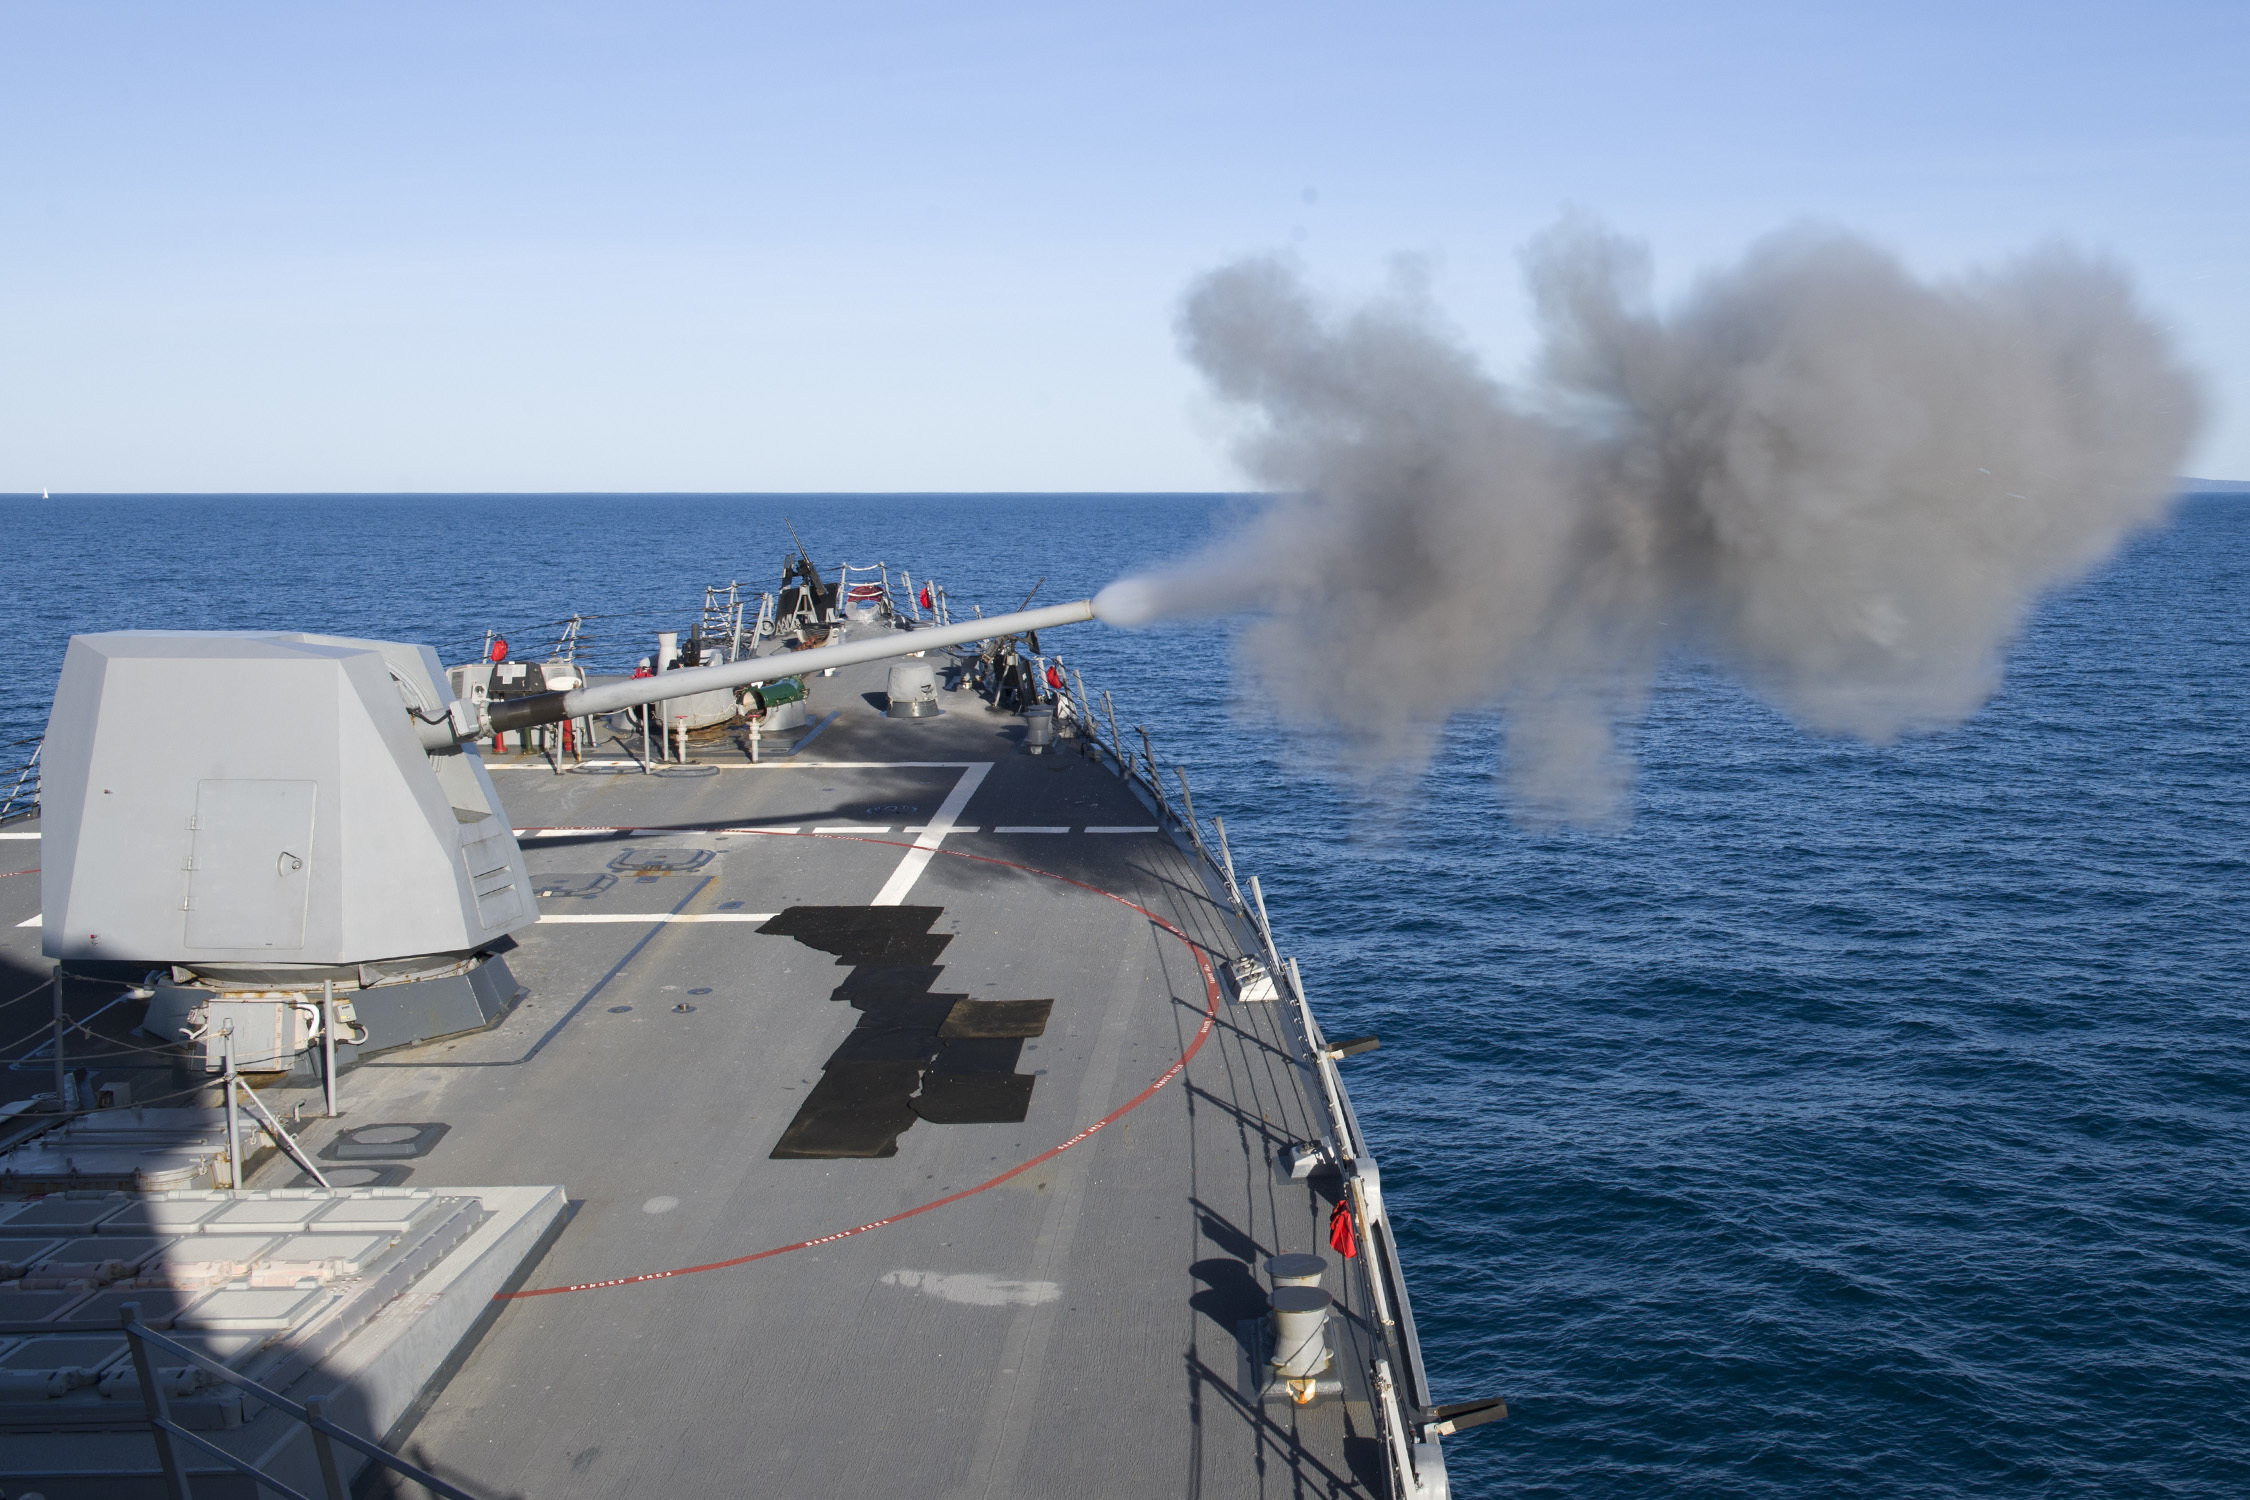 The U.S. guided-missile destroyer Sterett fires its MK 45 5-inch gun during a naval surface fire support exercise as part of Talisman Saber 17. Talisman Saber is a biennial U.S. and Australia bilateral exercise held off the coast of Australia meant to achieve interoperability and strengthen the alliance between the two countries. (MC1 Byron C. Linder/U.S. Navy)